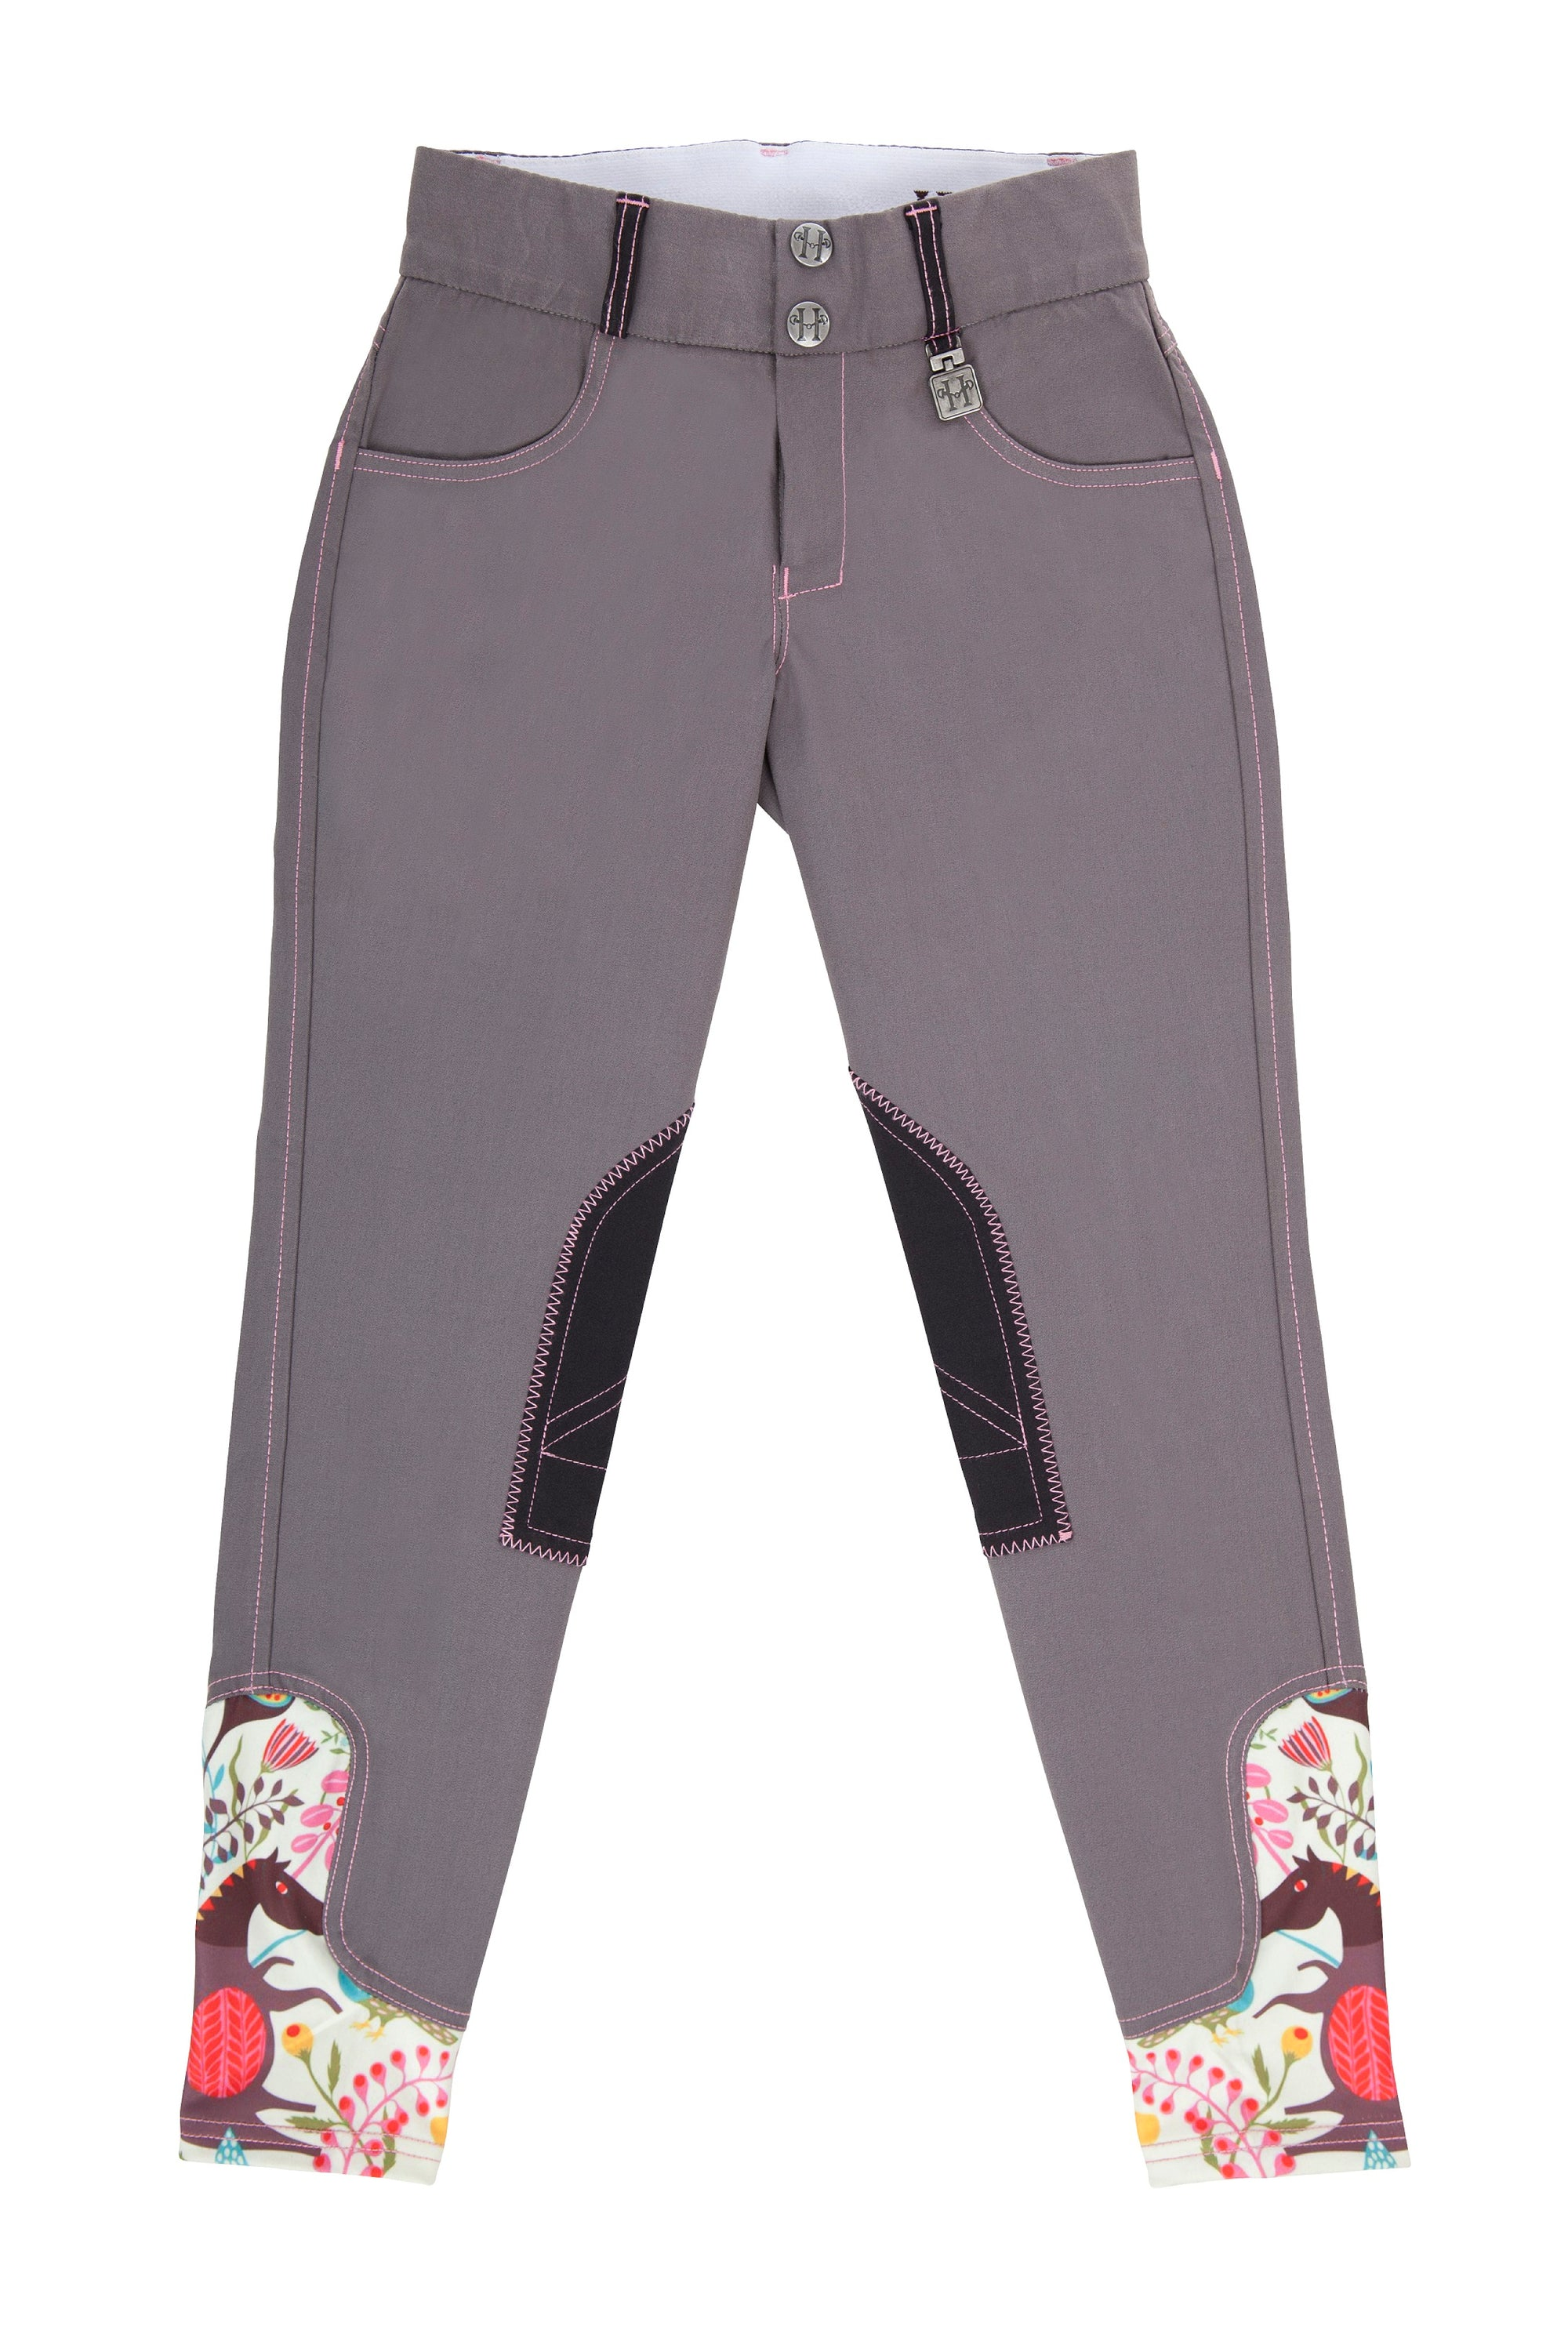 Daisy Clipper Children's Grey with Pink Pony Breech - Huntley Equestrian